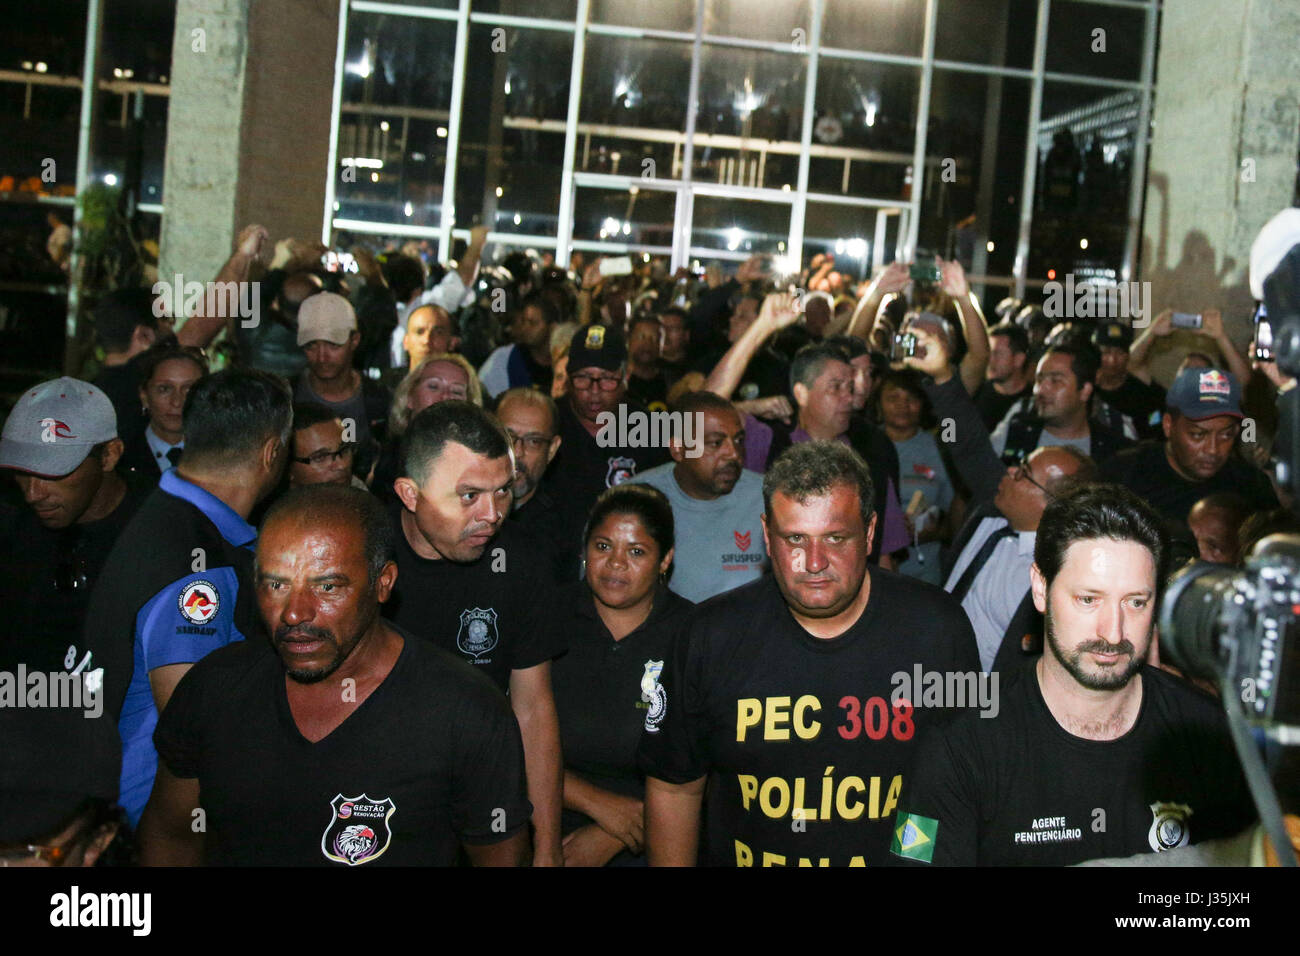 BRASÍLIA, DF - 02.05.2017: PRISON GUARDS INVADE MJ - Correctional officers vacate MJ headquarters late on Tuesday - Stock Image